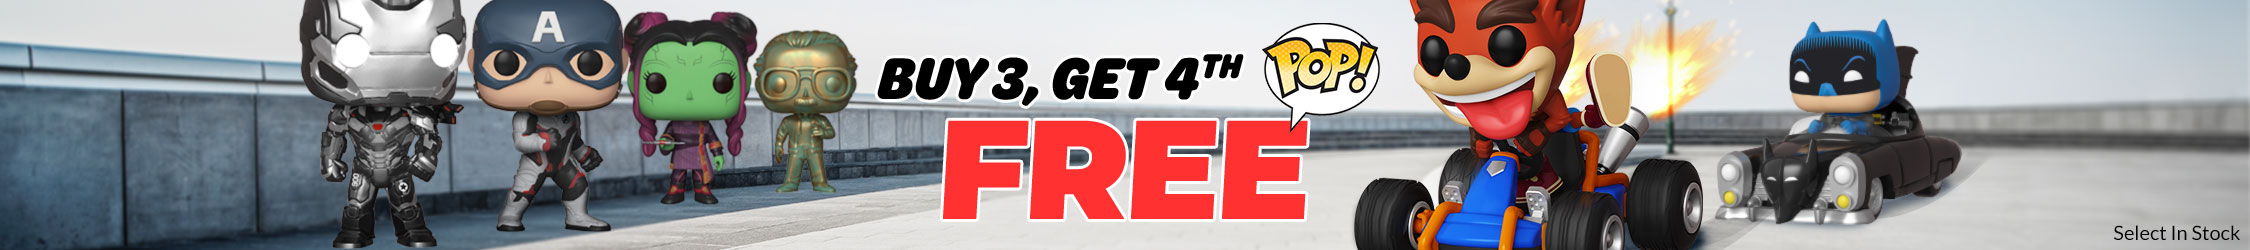 Buy 3 Get 4th Free on Select In Stock Select Funko Pop